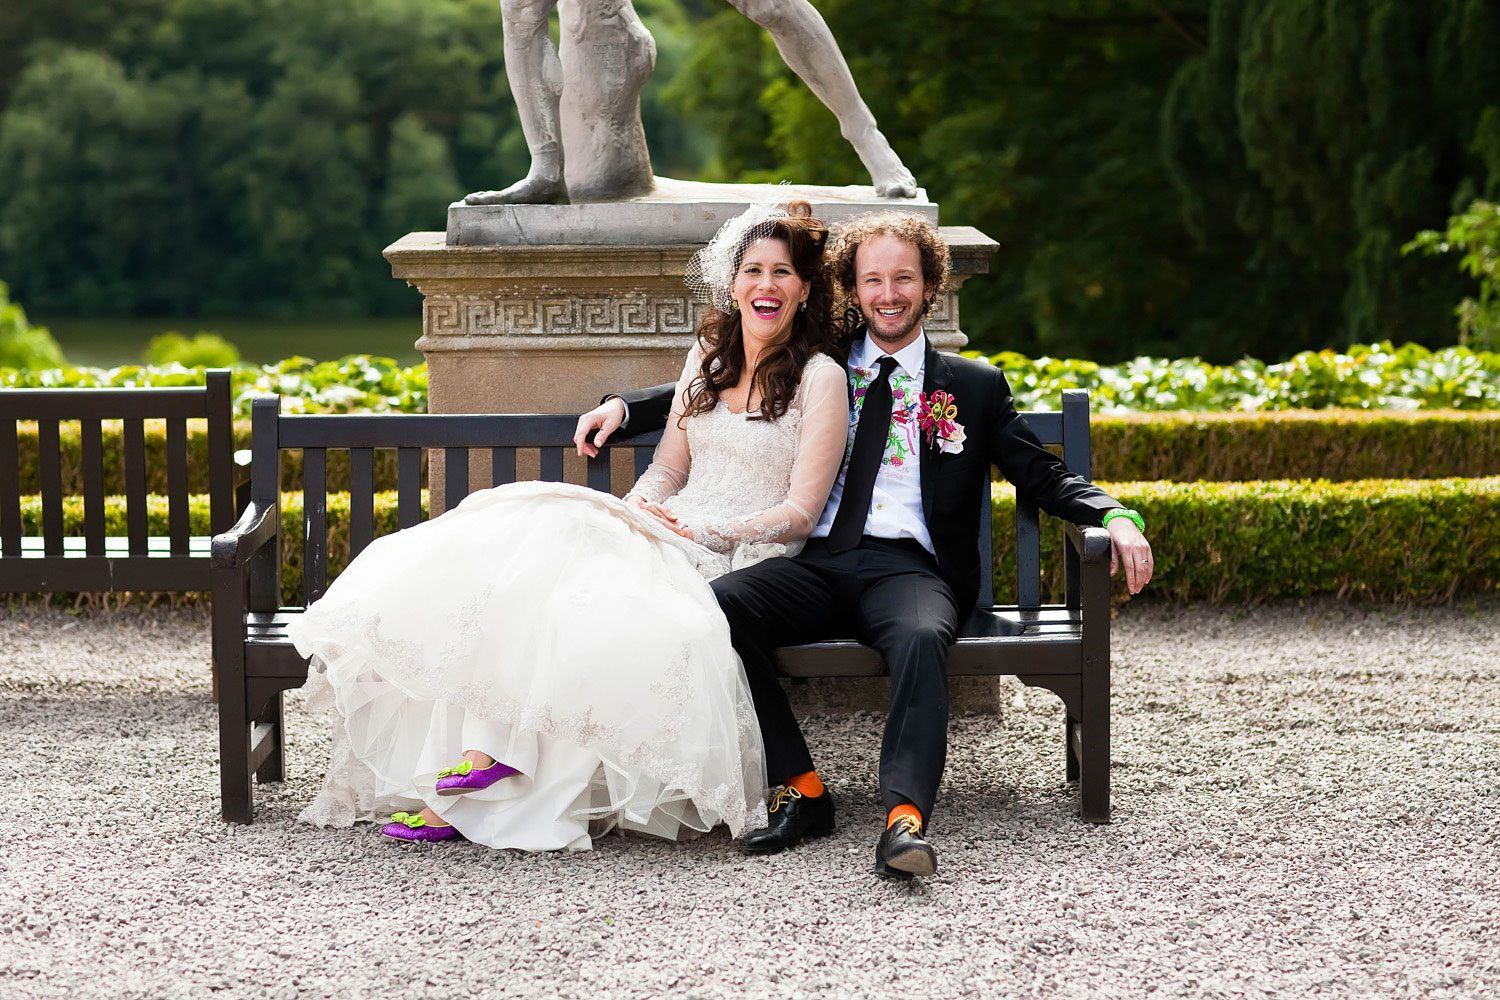 bride and groom pose in bespoke wedding outfits